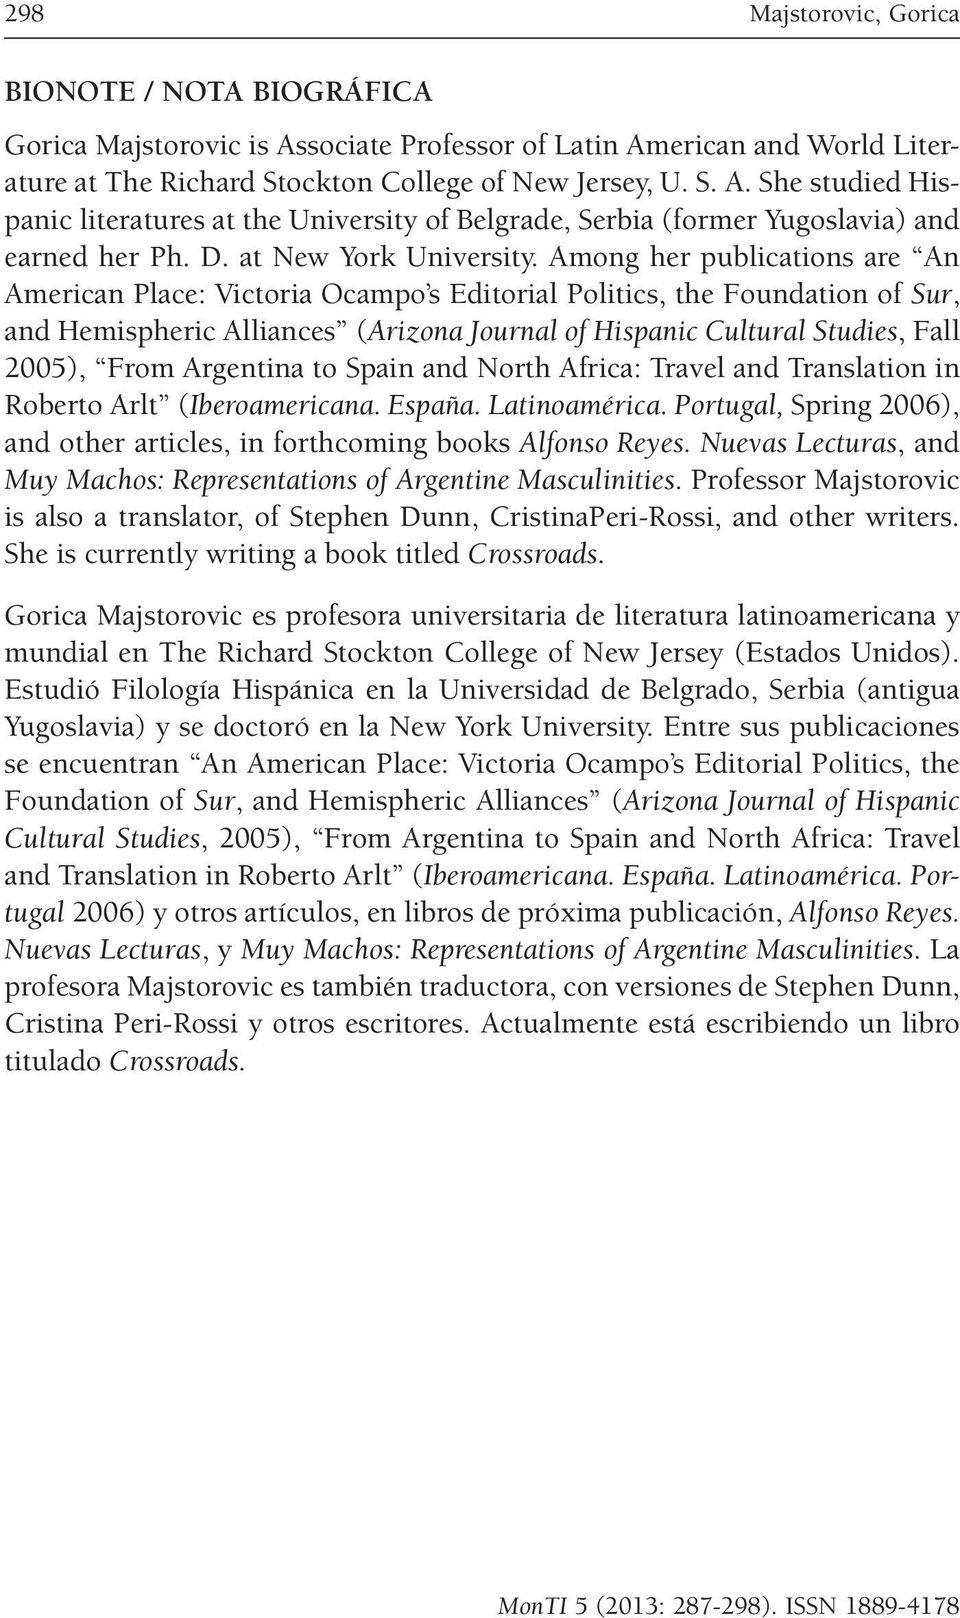 Among her publications are An American Place: Victoria Ocampo s Editorial Politics, the Foundation of Sur, and Hemispheric Alliances (Arizona Journal of Hispanic Cultural Studies, Fall 2005), From